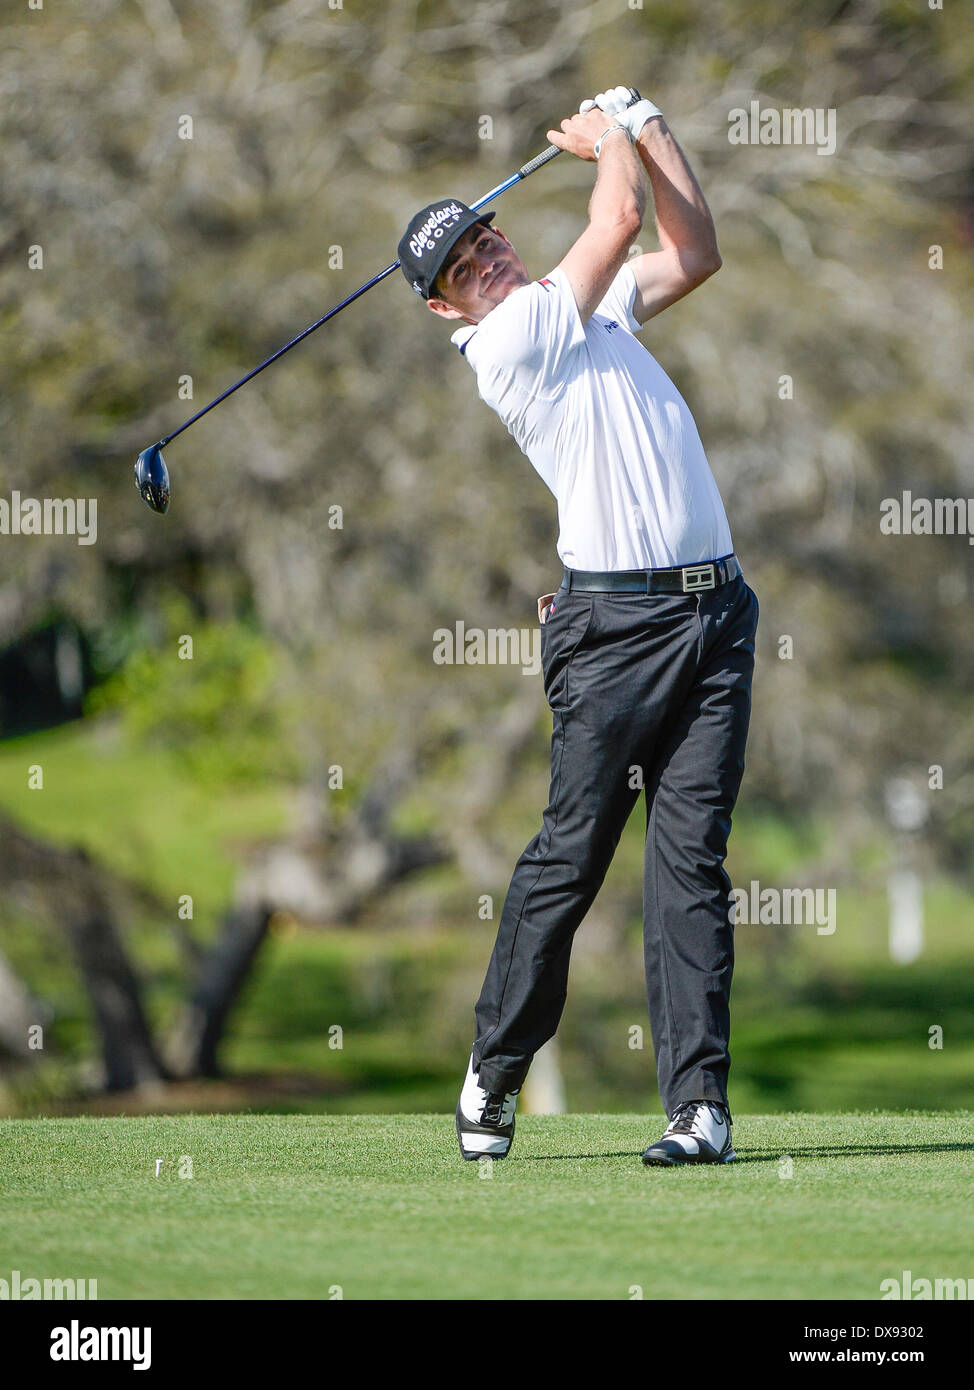 20th Mar, 2014. Keegan Bradley on #16 tee during first round golf action of the Arnold Palmer Invitational presented by Mastercard held at Arnold Palmer's ...